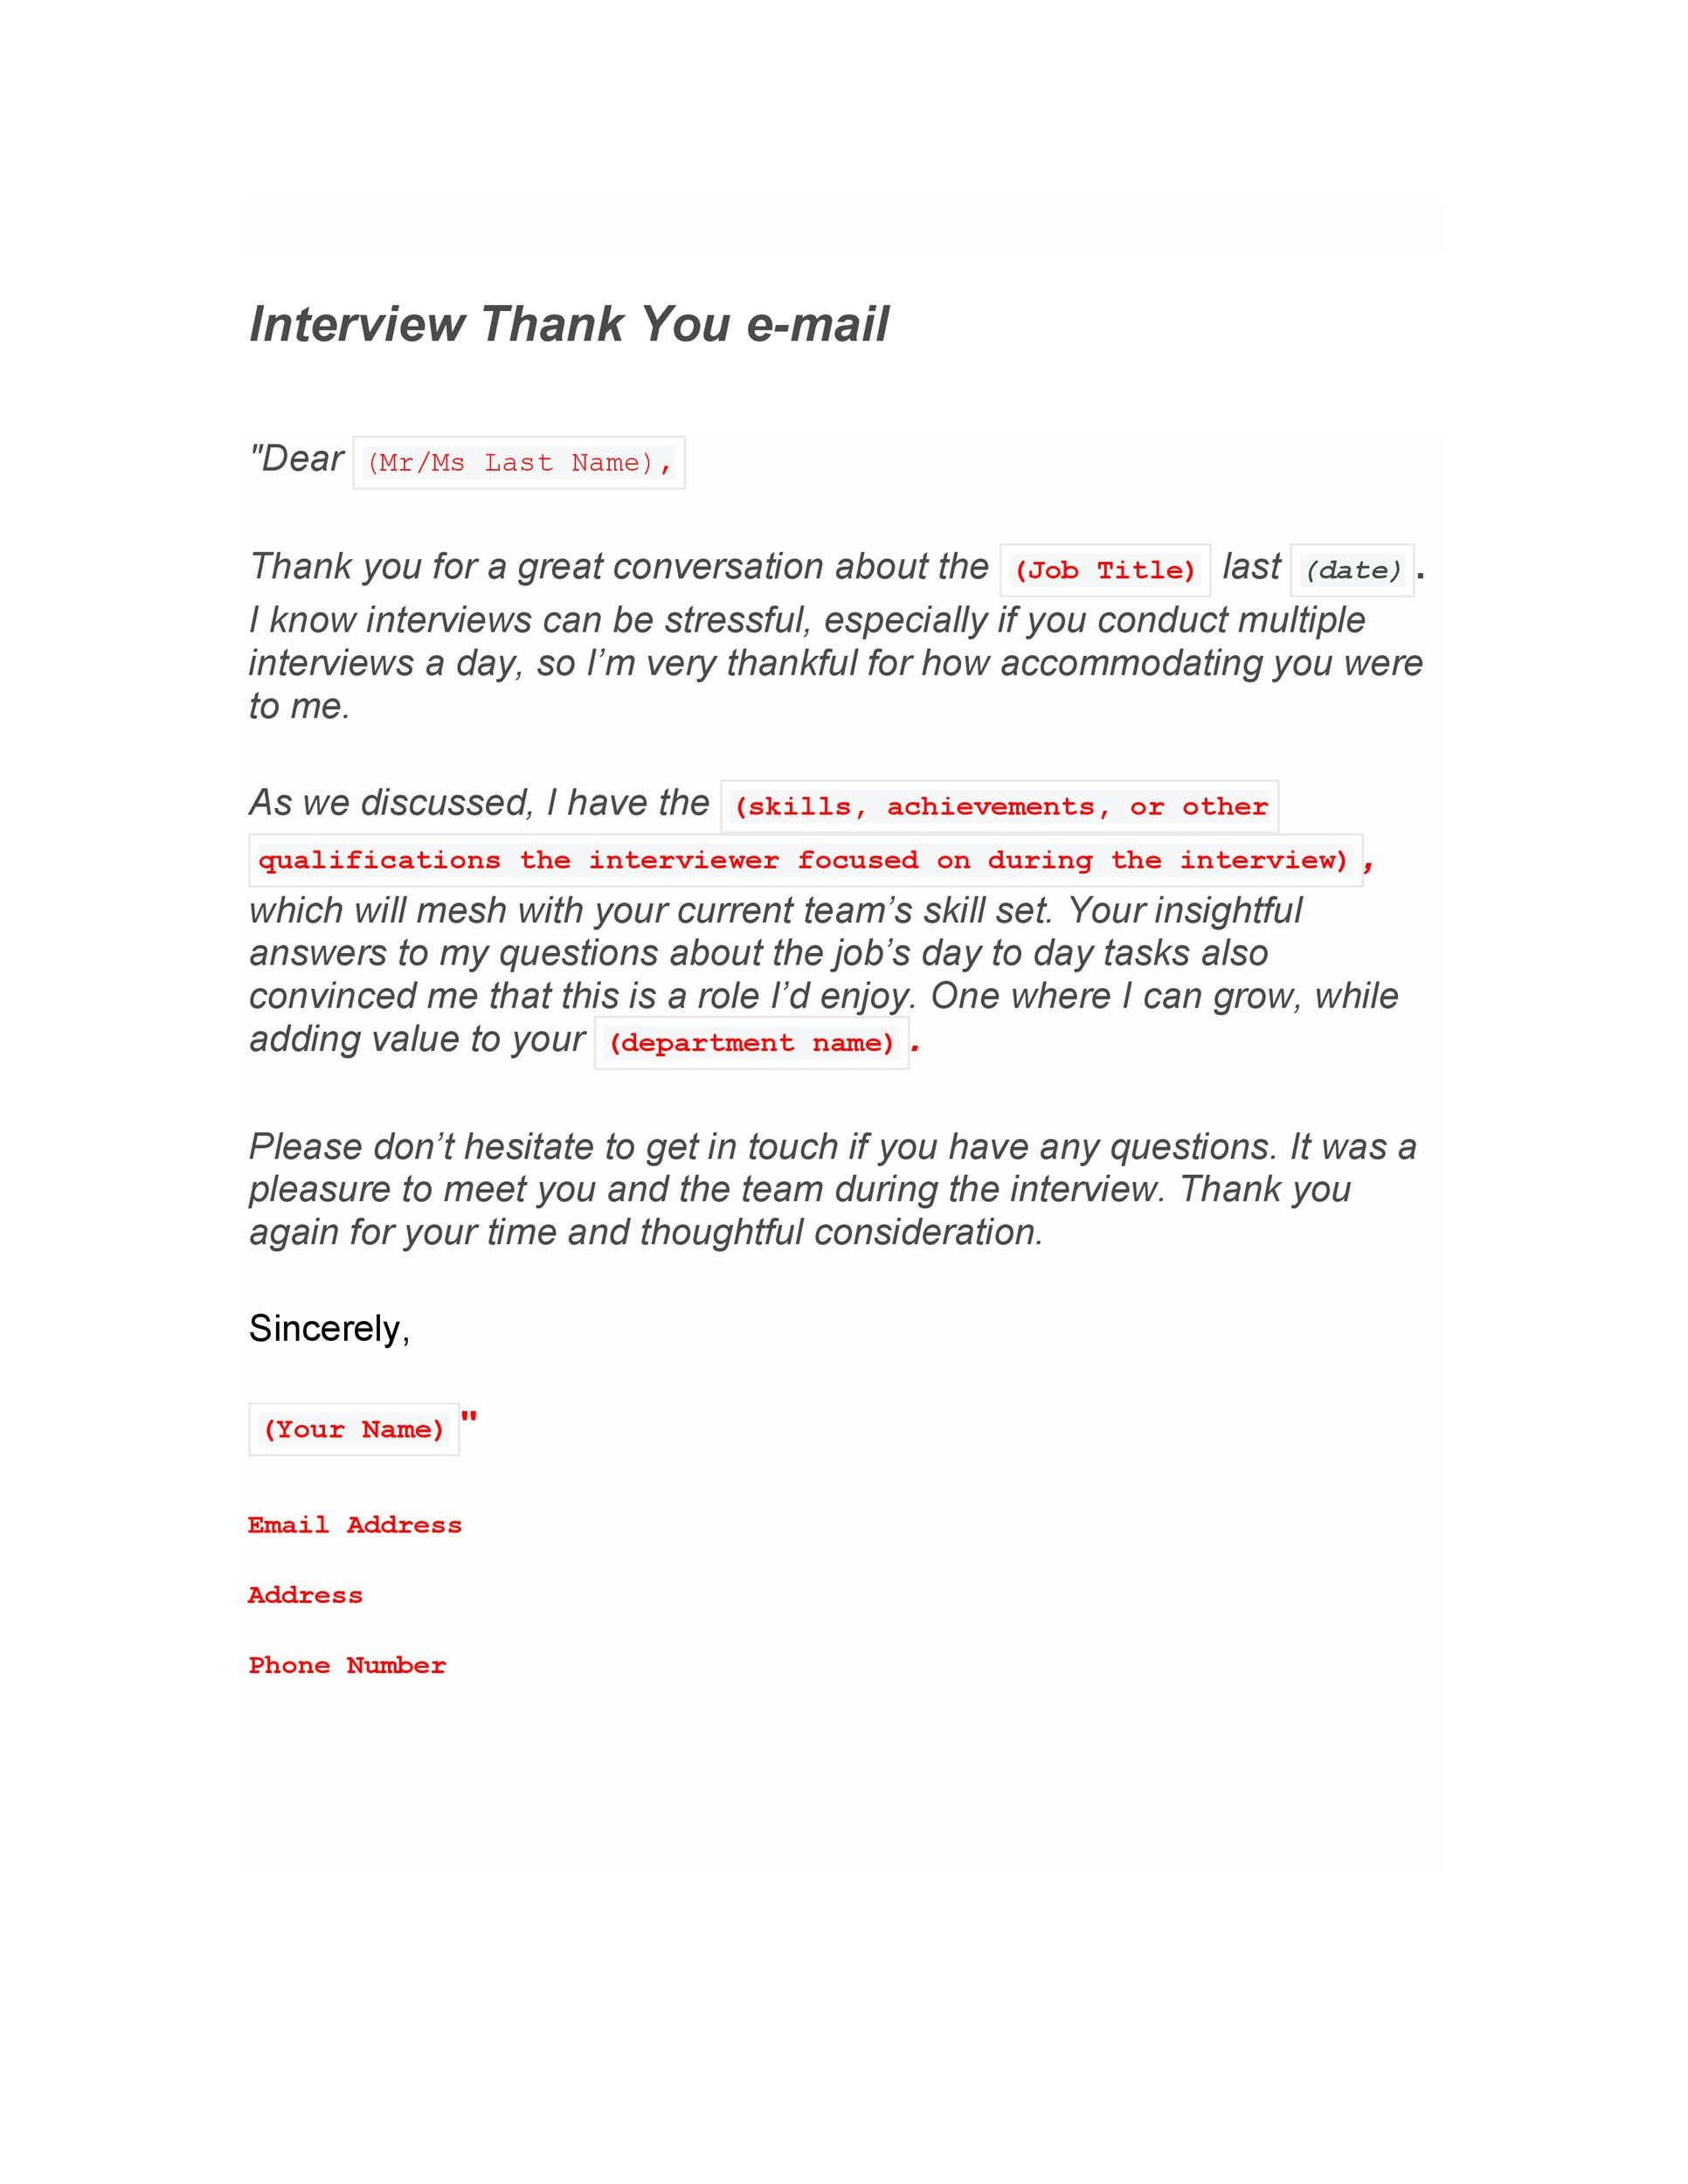 Free Thank you e-mail after Interview Template 13